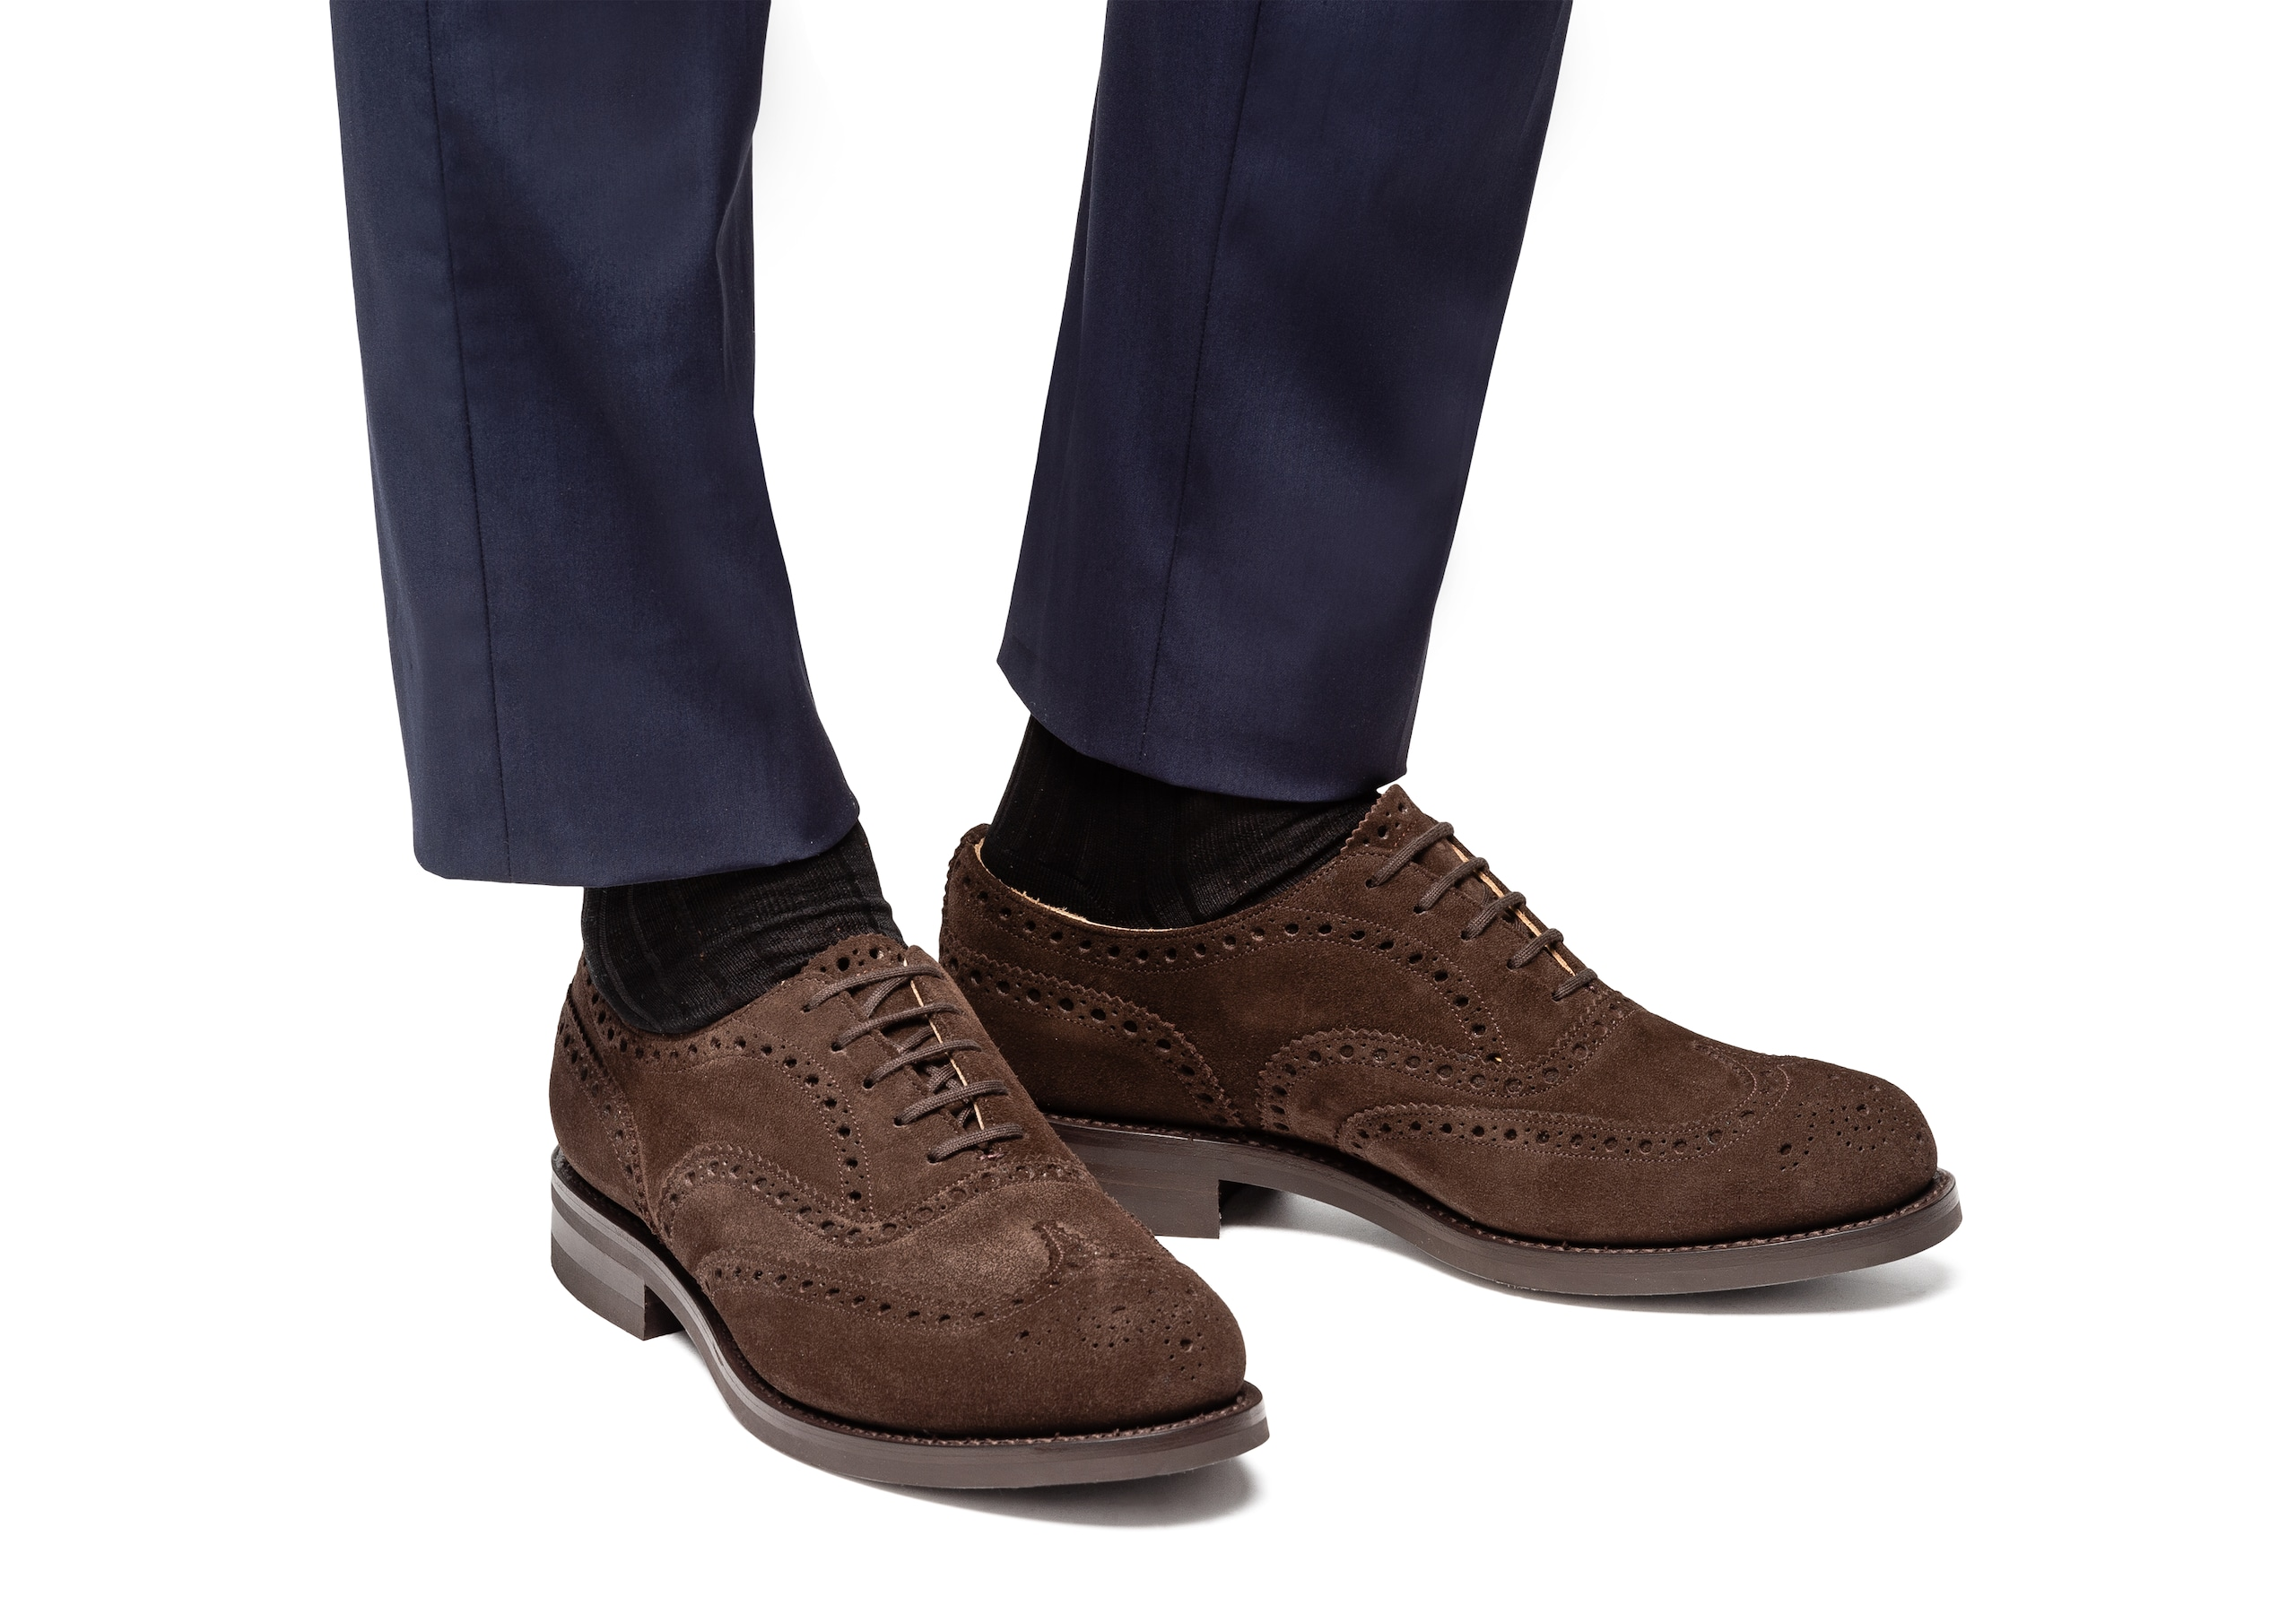 Amersham Church's Suede Oxford Brogue Brown